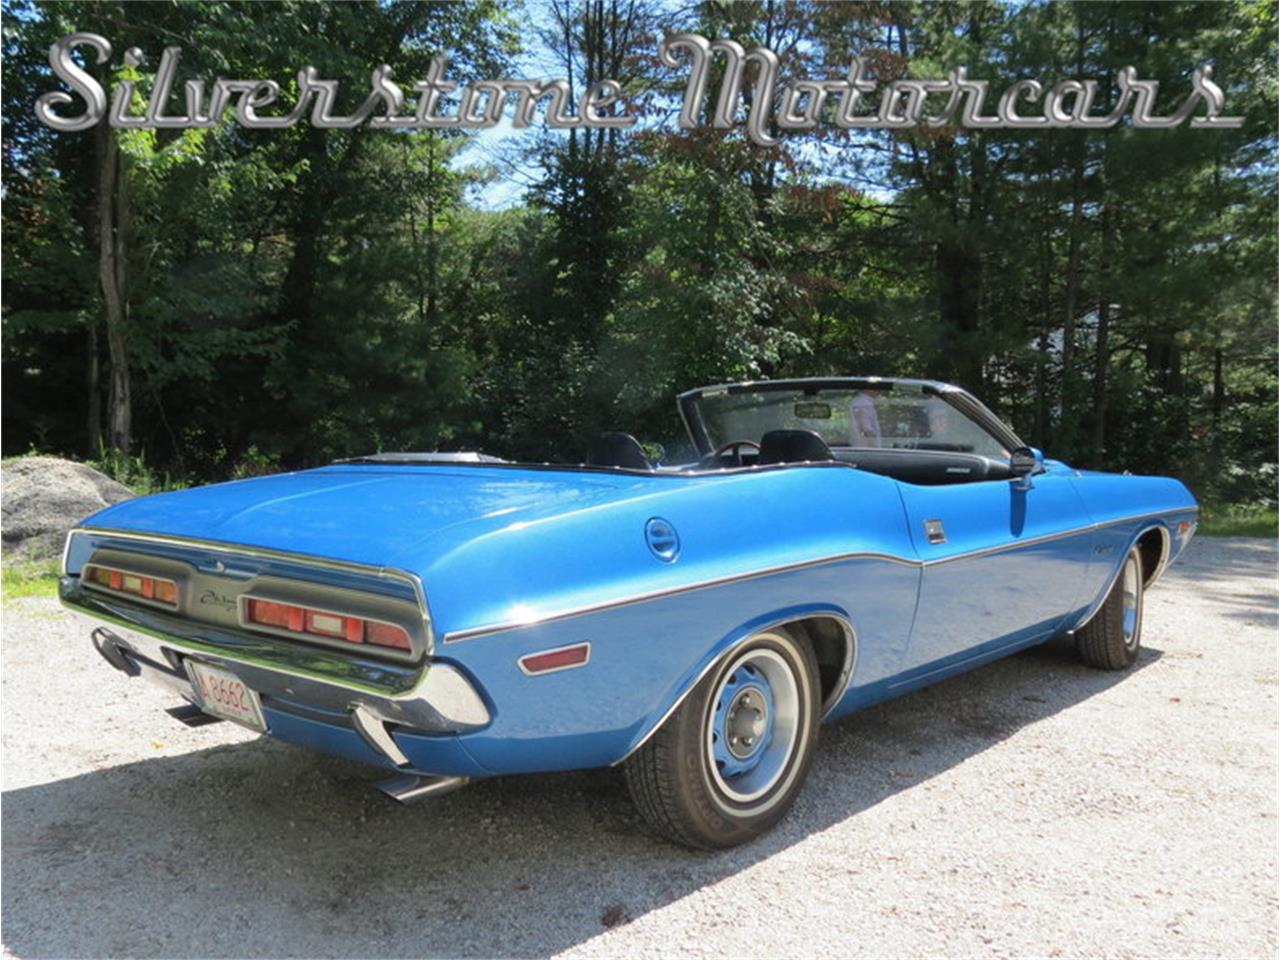 Large Picture of '71 Dodge Challenger located in Massachusetts - $45,900.00 - J0QS